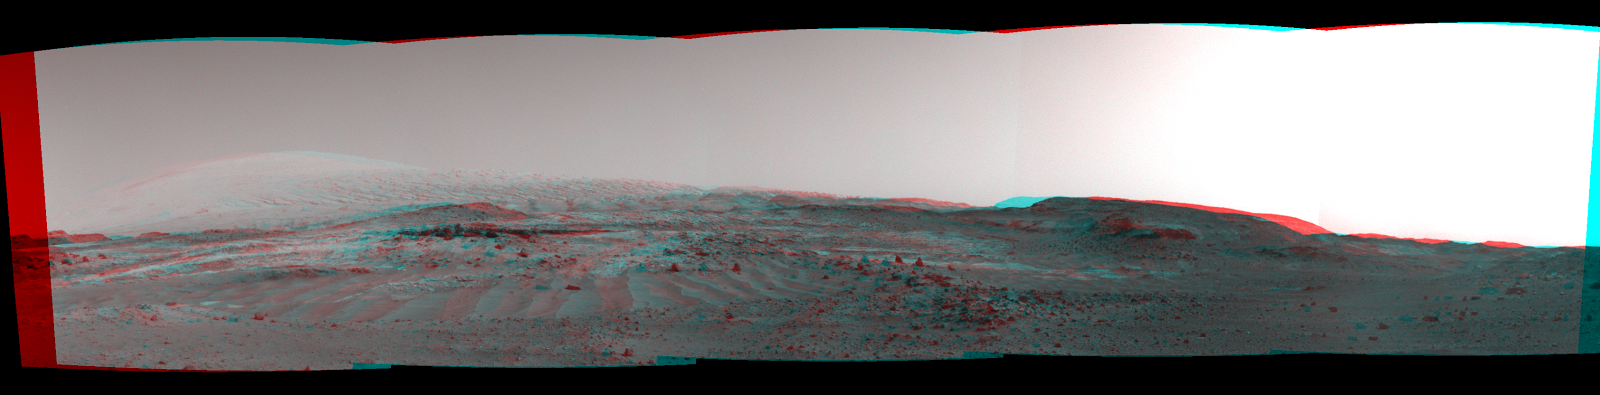 "NASA's Curiosity Mars rover used its Navigation Camera to capture this view on April 11, 2015, during passage through a valley called ""Artist's Drive"" on the route up Mount Sharp. The image appears three-dimensional when viewed through red-blue glasses with the red lens on the left. Image Credit: NASA/JPL-Caltech"